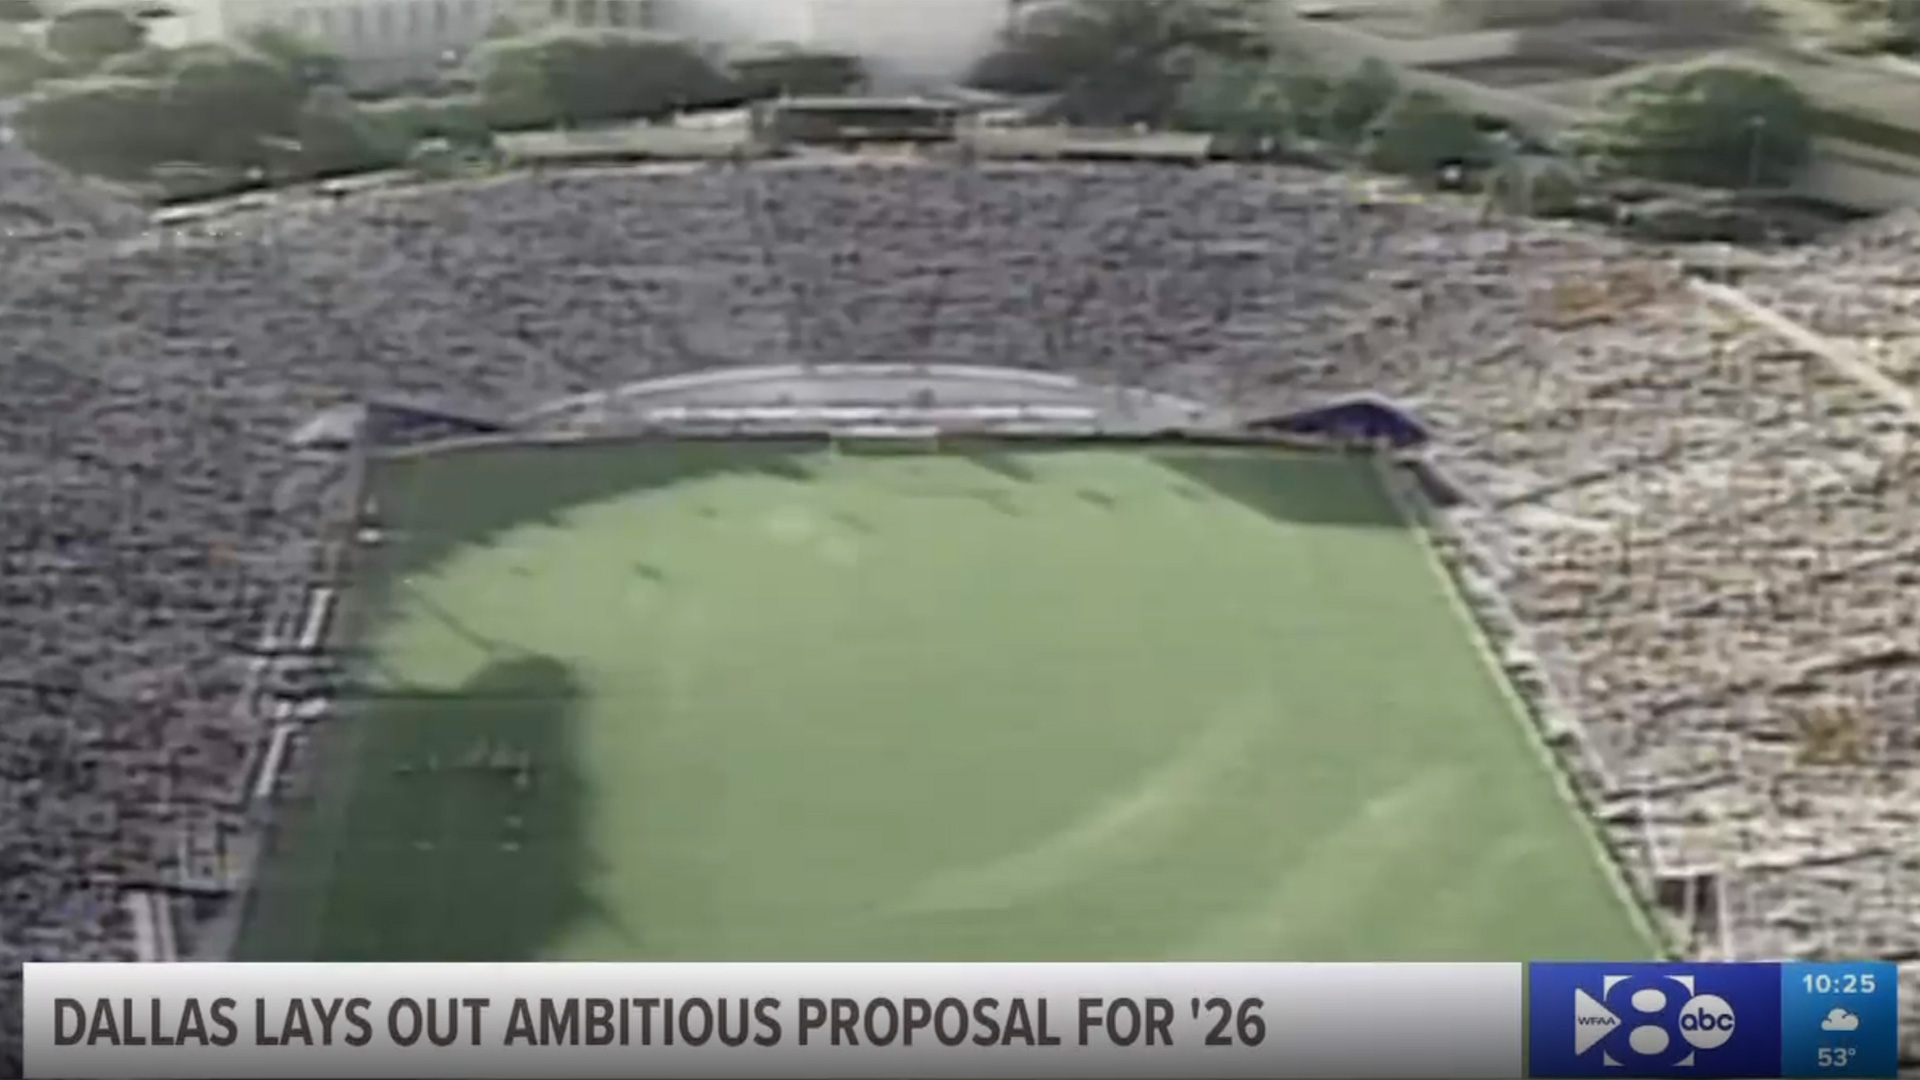 Dallas Lays Out Ambitious Proposal For '26